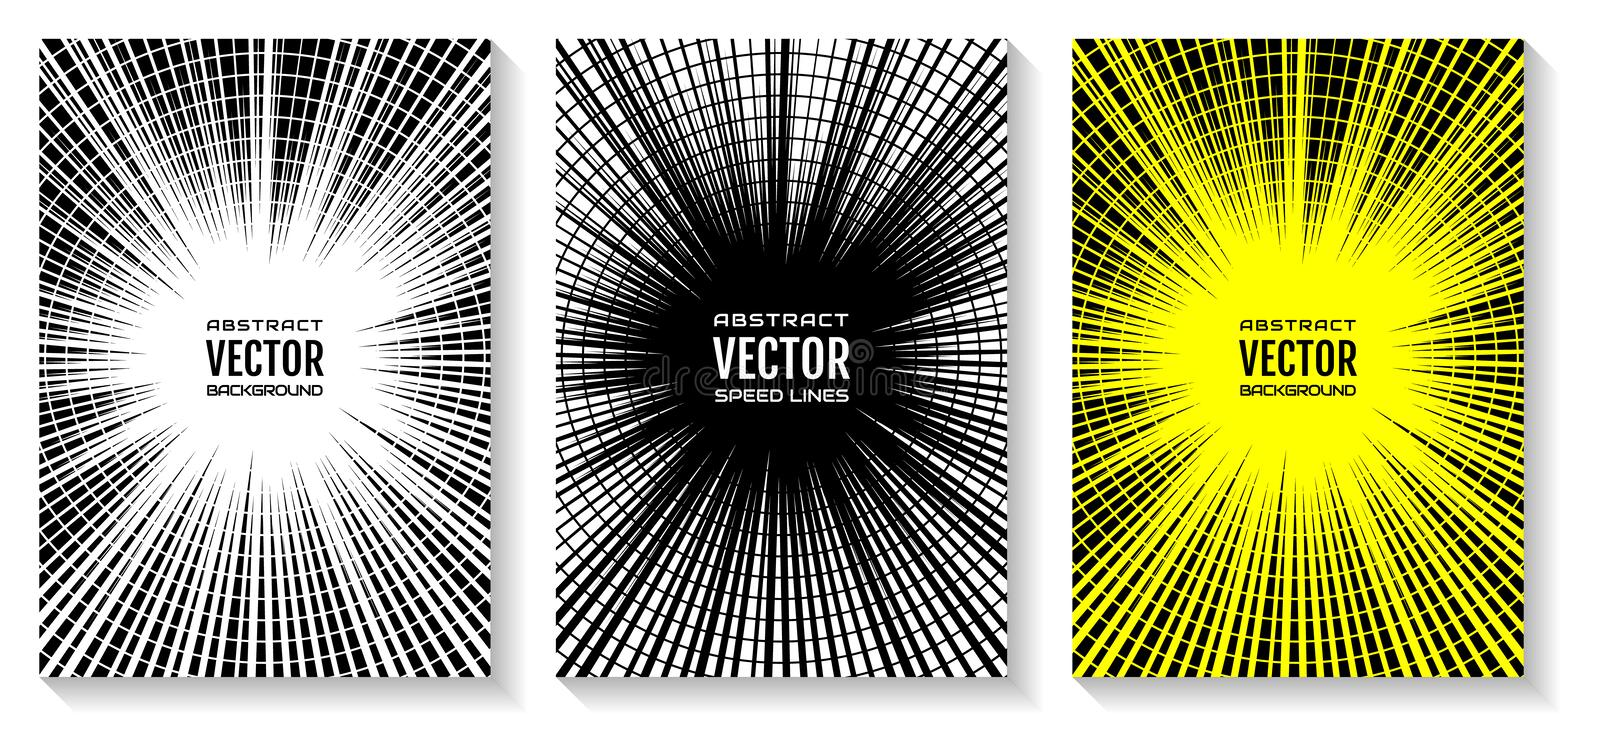 Set comic book speed lines radial background. Geometric illustration of rays intersected by circular rings, as equalizer royalty free illustration